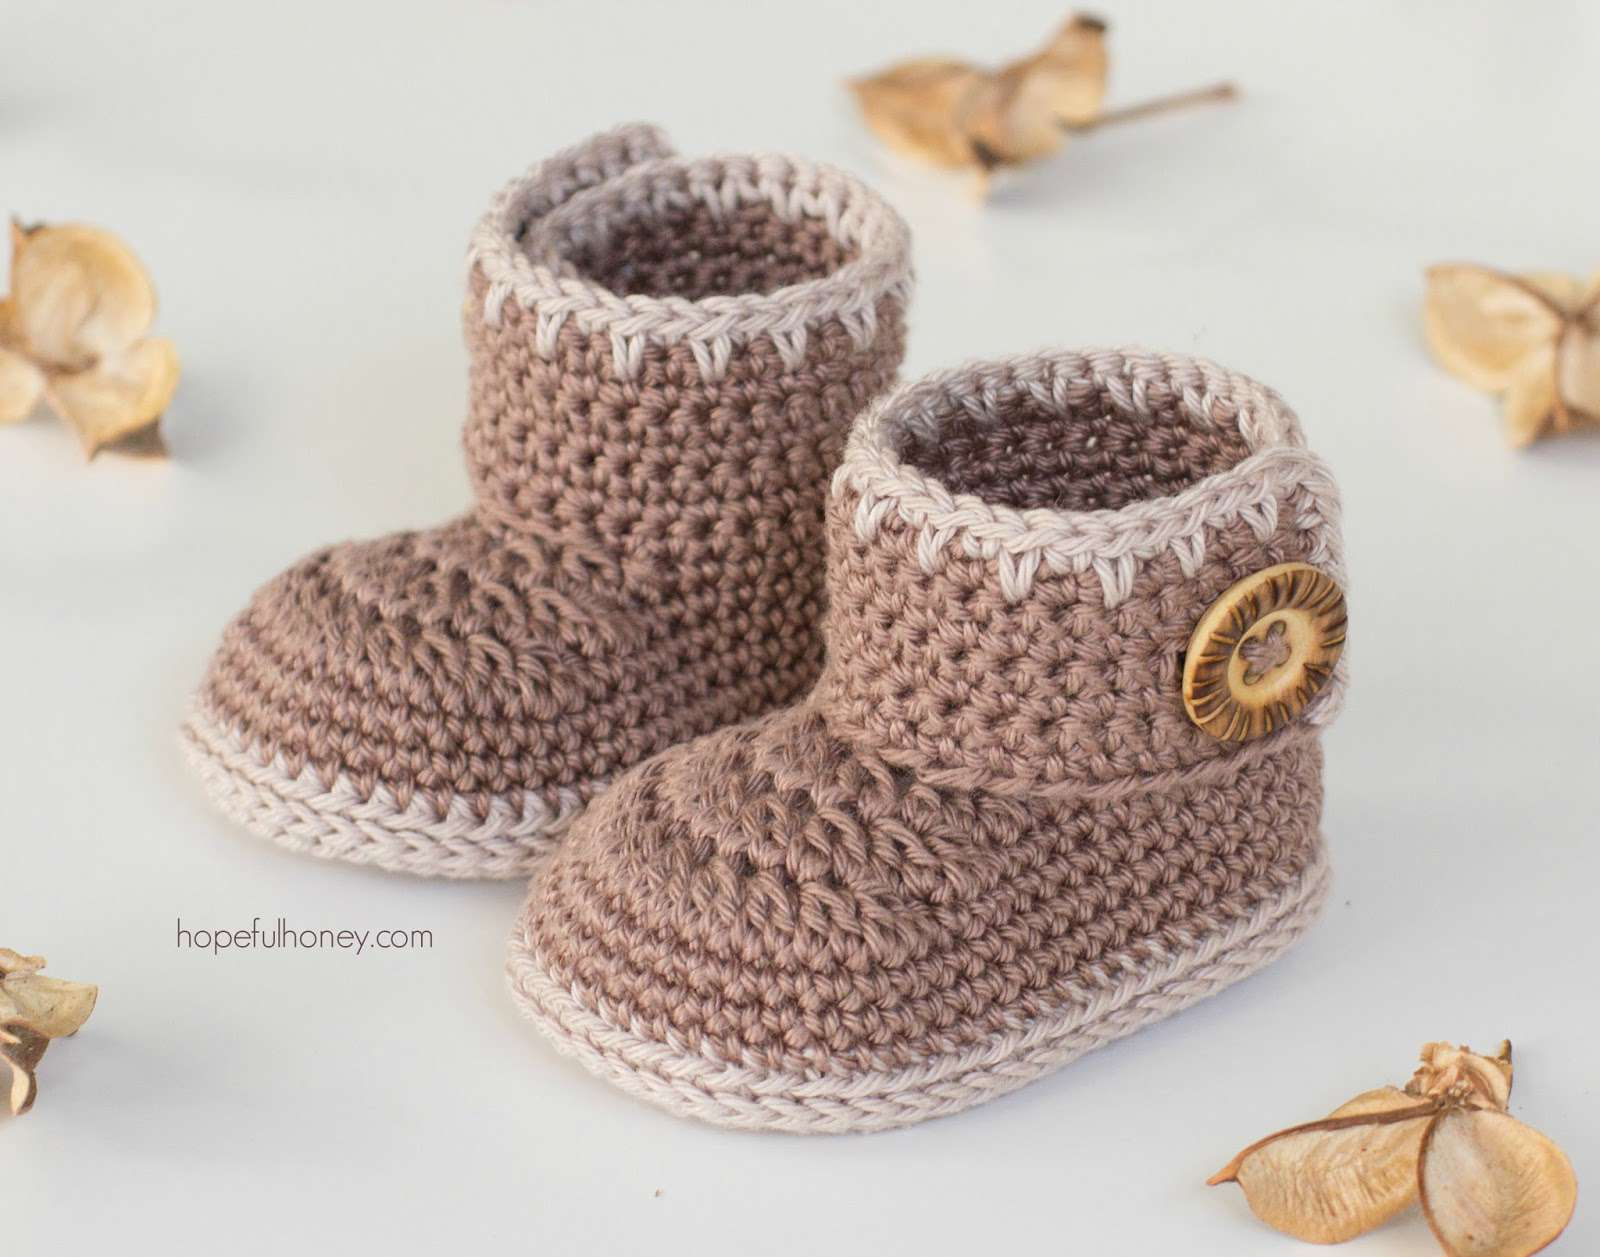 14 Crochet Patterns For Baby Booties